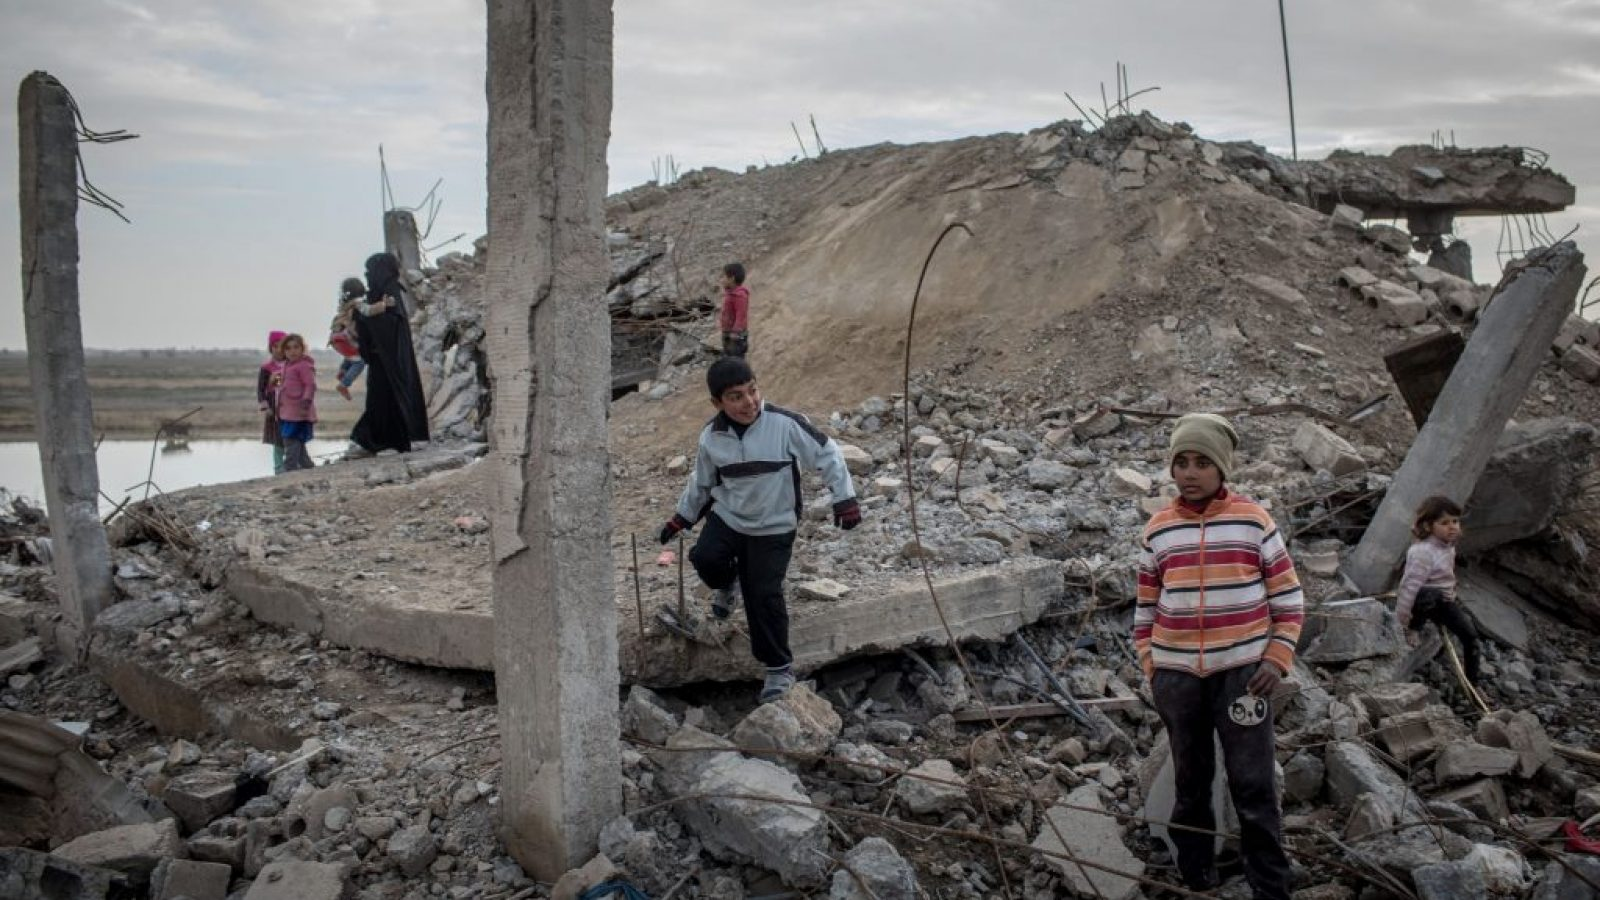 CHILDREN PLAY AMID RUBBLE ON FEBRUARY 16, 2019 IN HAJIN, SYRIA. AERIAL BOMBARDMENTS HAVE POLLUTED GROUNDWATER AND CREATED SEVERE AIR POLLUTION. EXPLOSIVE WEAPONS LEAVE A HEAVY TOXIC FOOTPRINT BEHIND FOR CIVILIANS WHO HAVE ALREADY ENDURED YEARS OF BOMBING. SOURCE: CHRIS MCGRATH/GETTY IMAGES